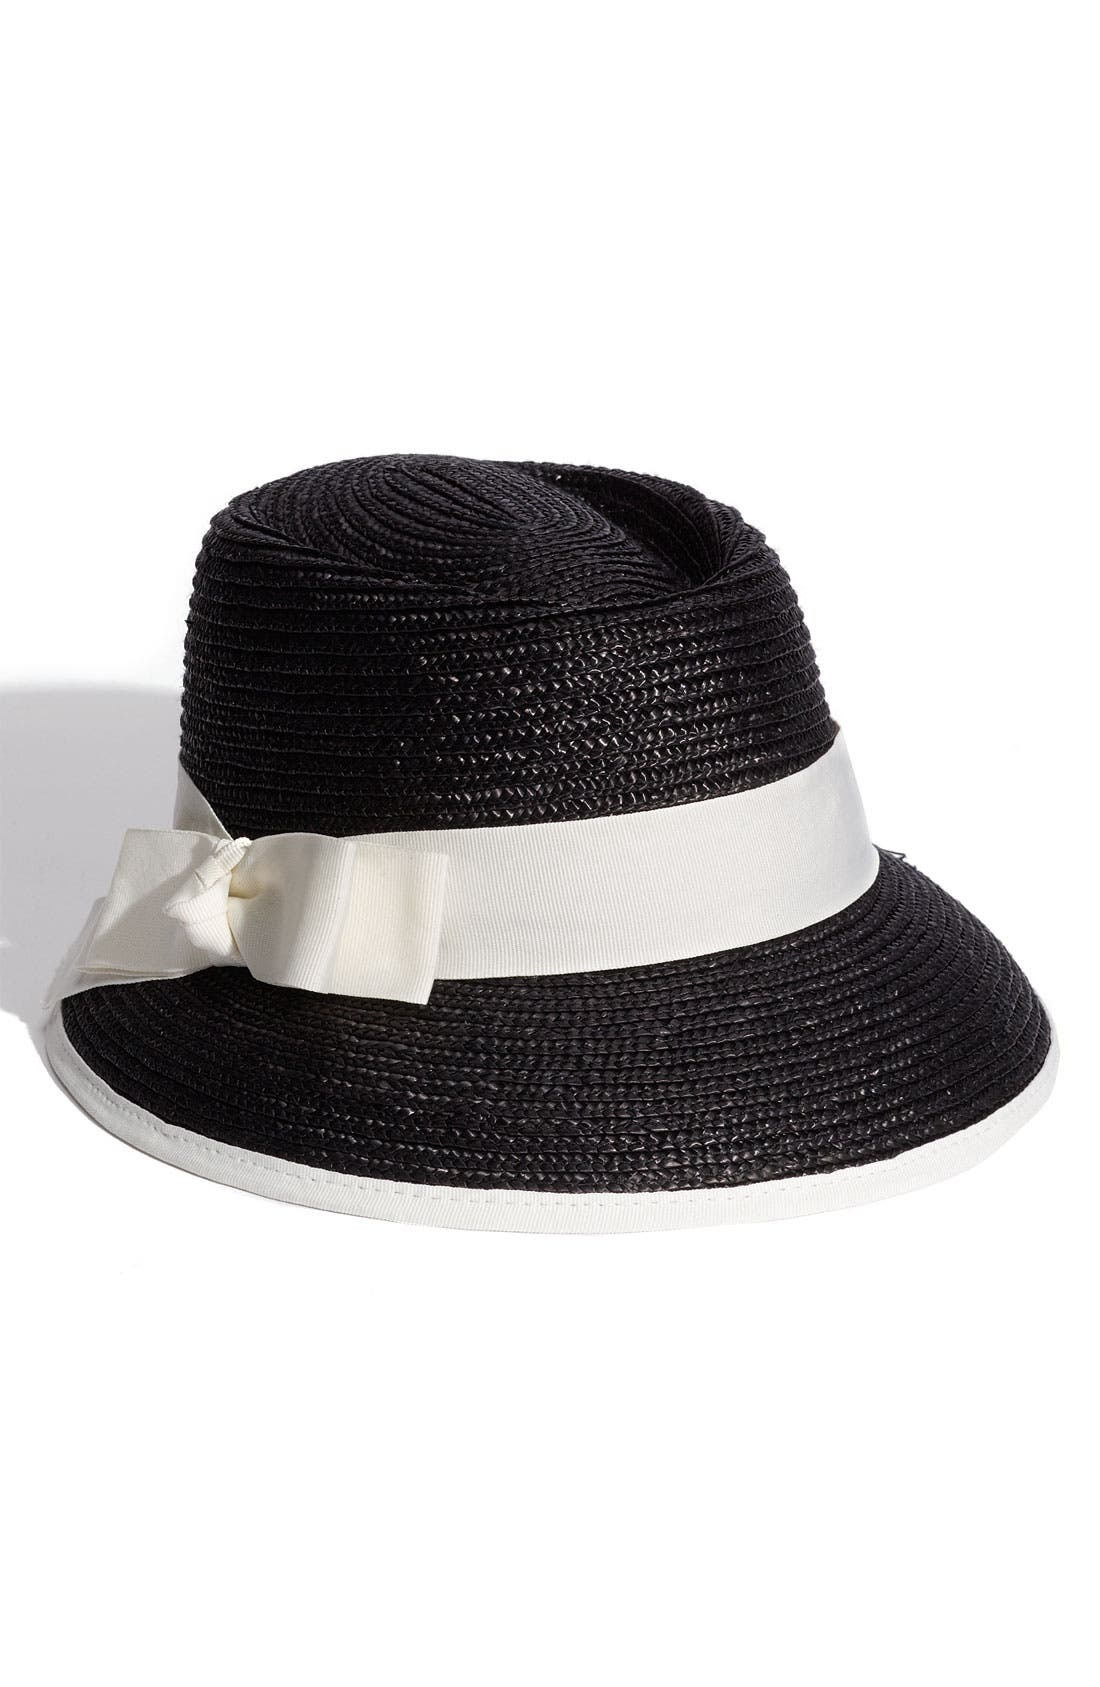 Main Image - Halogen® 'Long Brim' Straw Hat